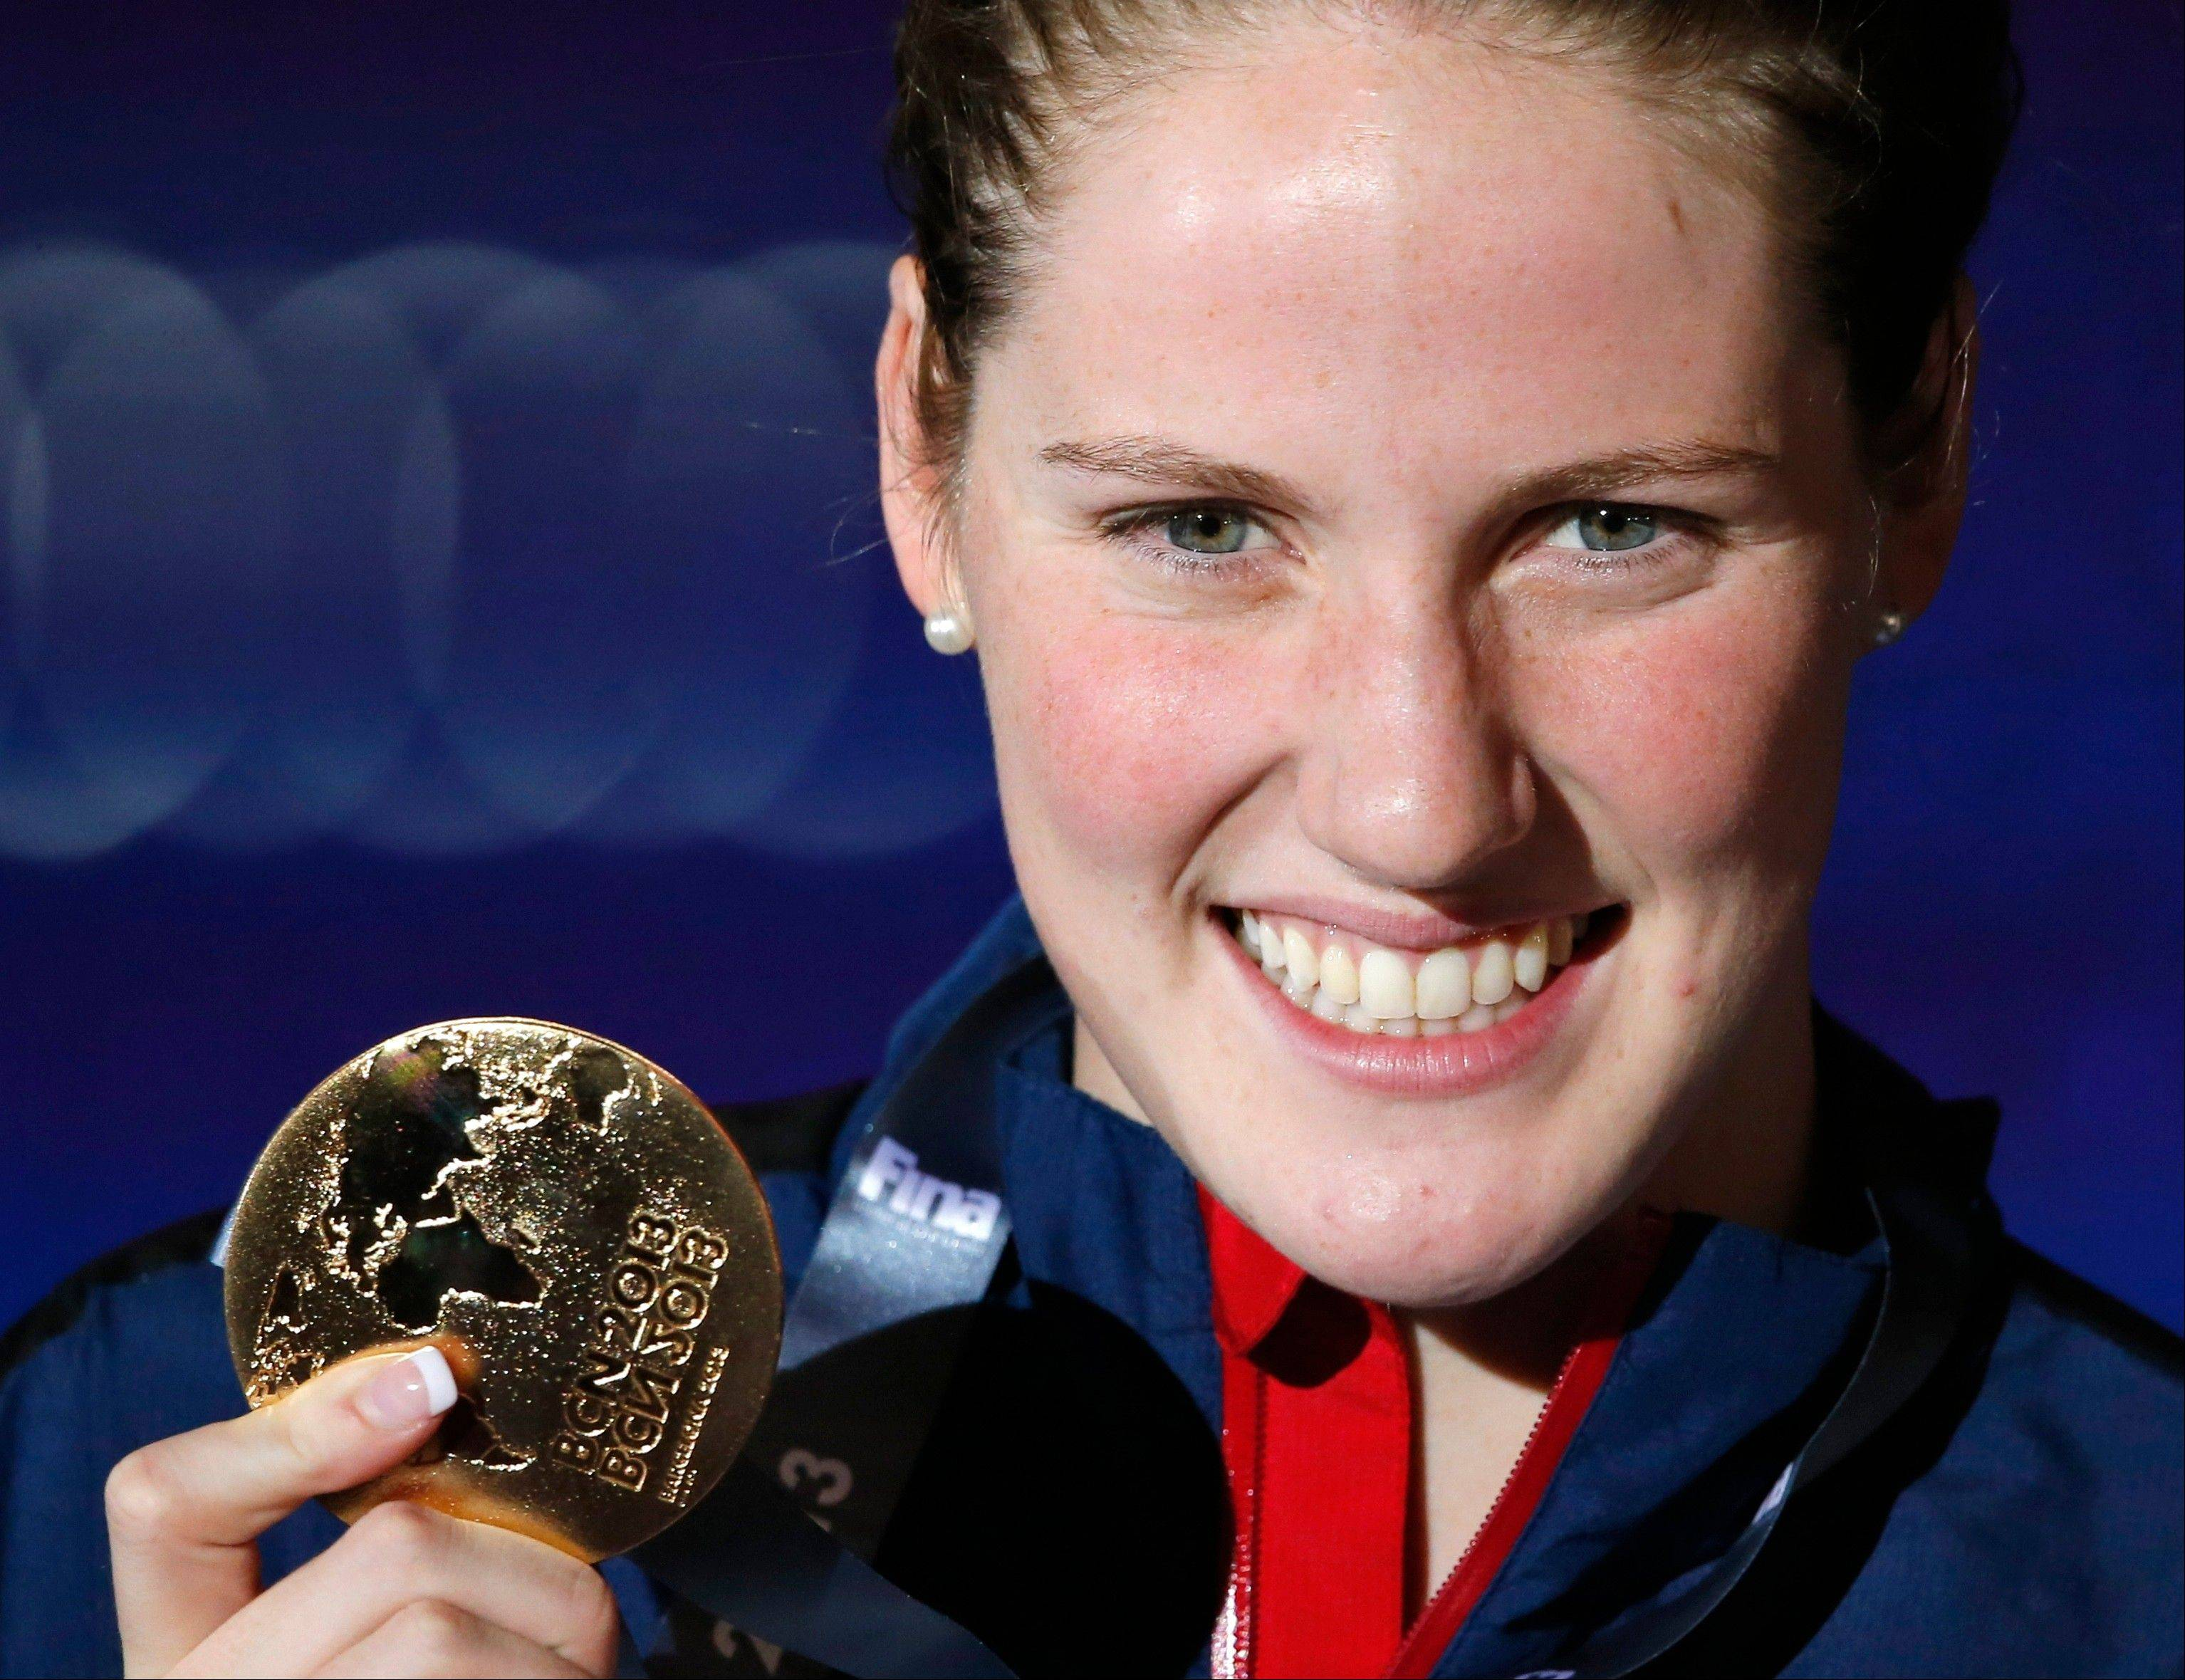 Missy Franklin of the United States smiles as she holds the gold medal she won in the Women's 200m backstroke final at the FINA Swimming World Championships in Barcelona, Spain, Saturday, Aug. 3, 2013. (AP Photo/Daniel Ochoa de Olza)